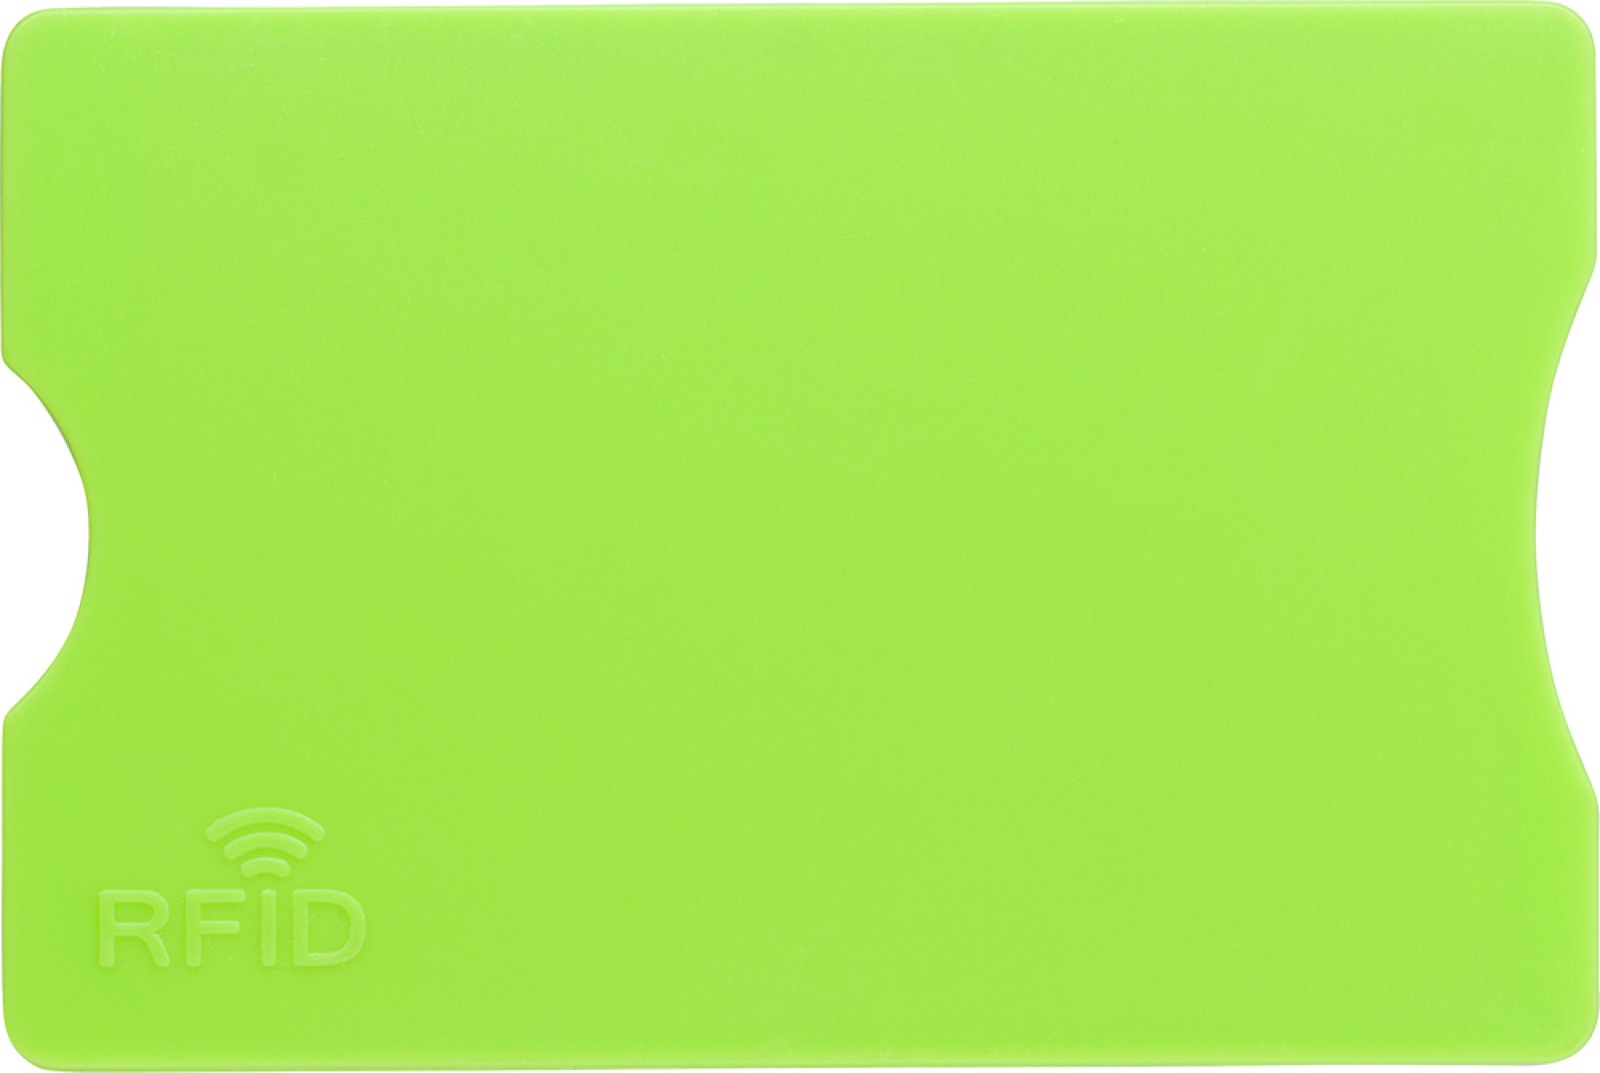 PS card holder - Lime